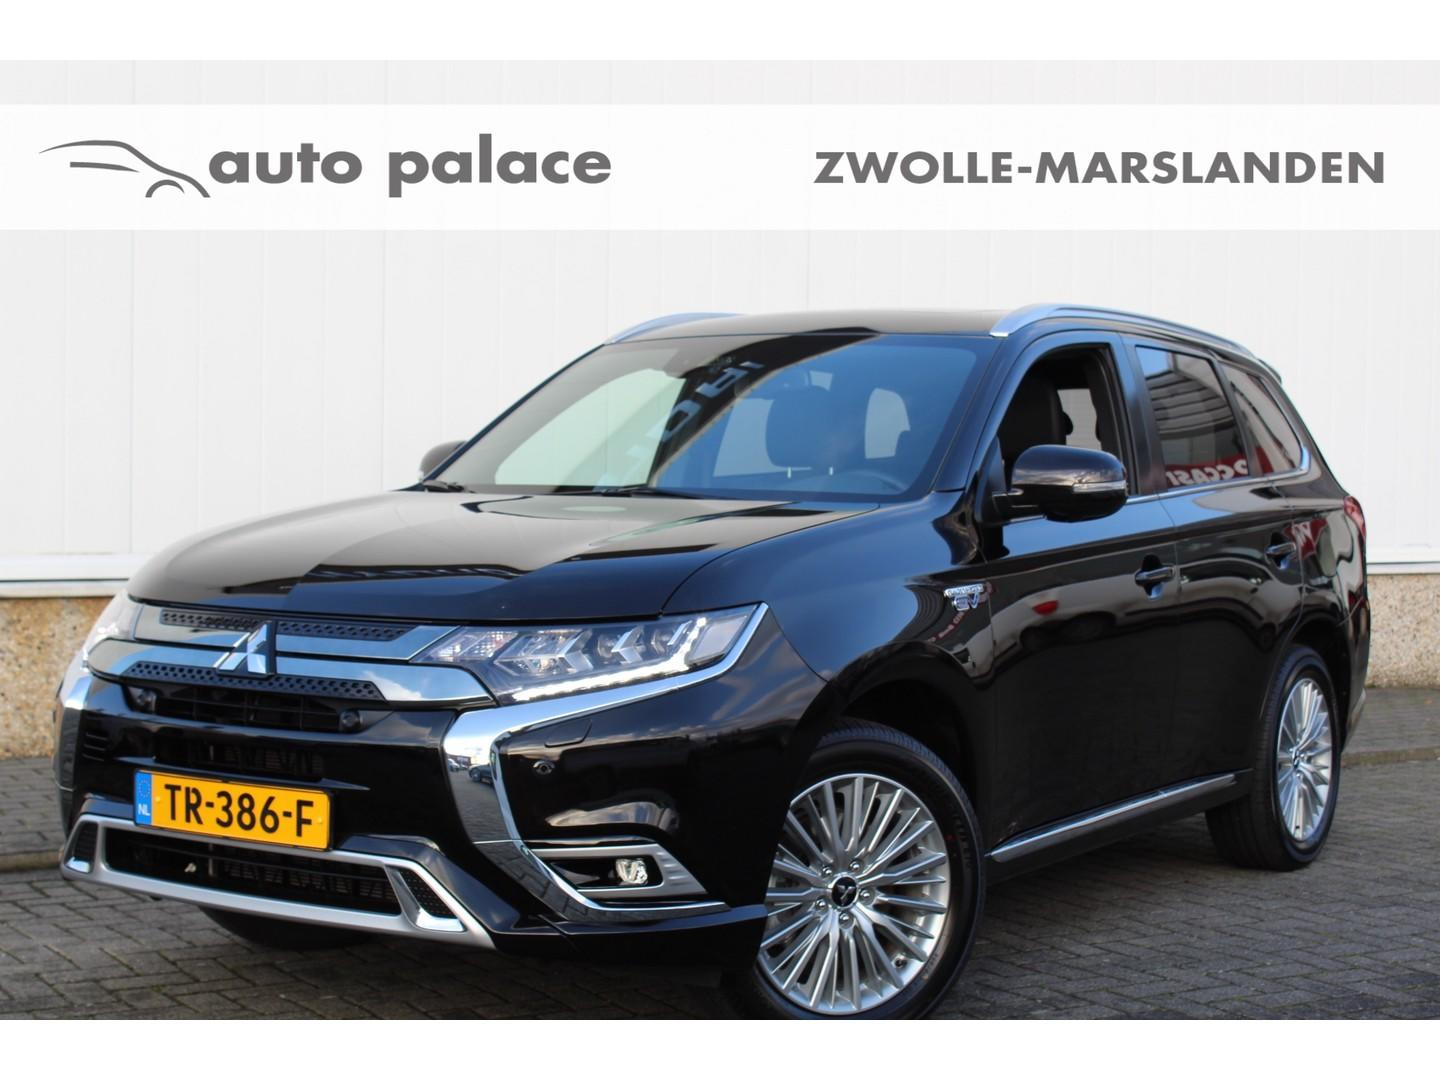 Mitsubishi Outlander 2.4 dohc mivec phev 240pk 4wd automaat instyle